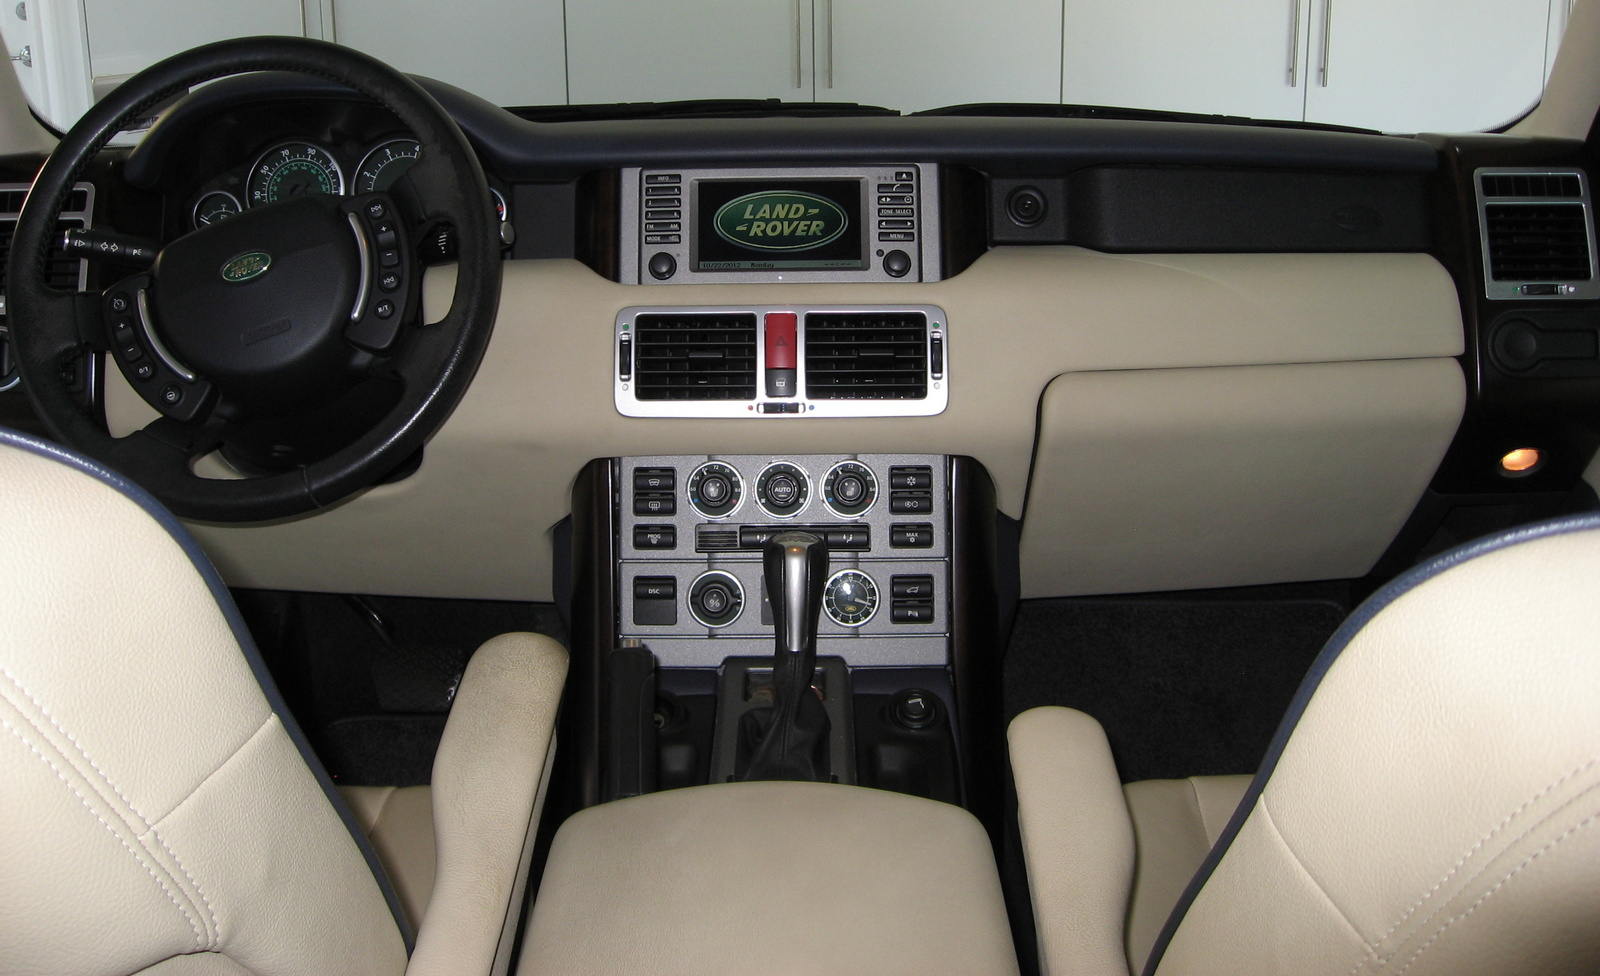 2004 land rover range rover interior pictures cargurus for 2004 range rover interior parts